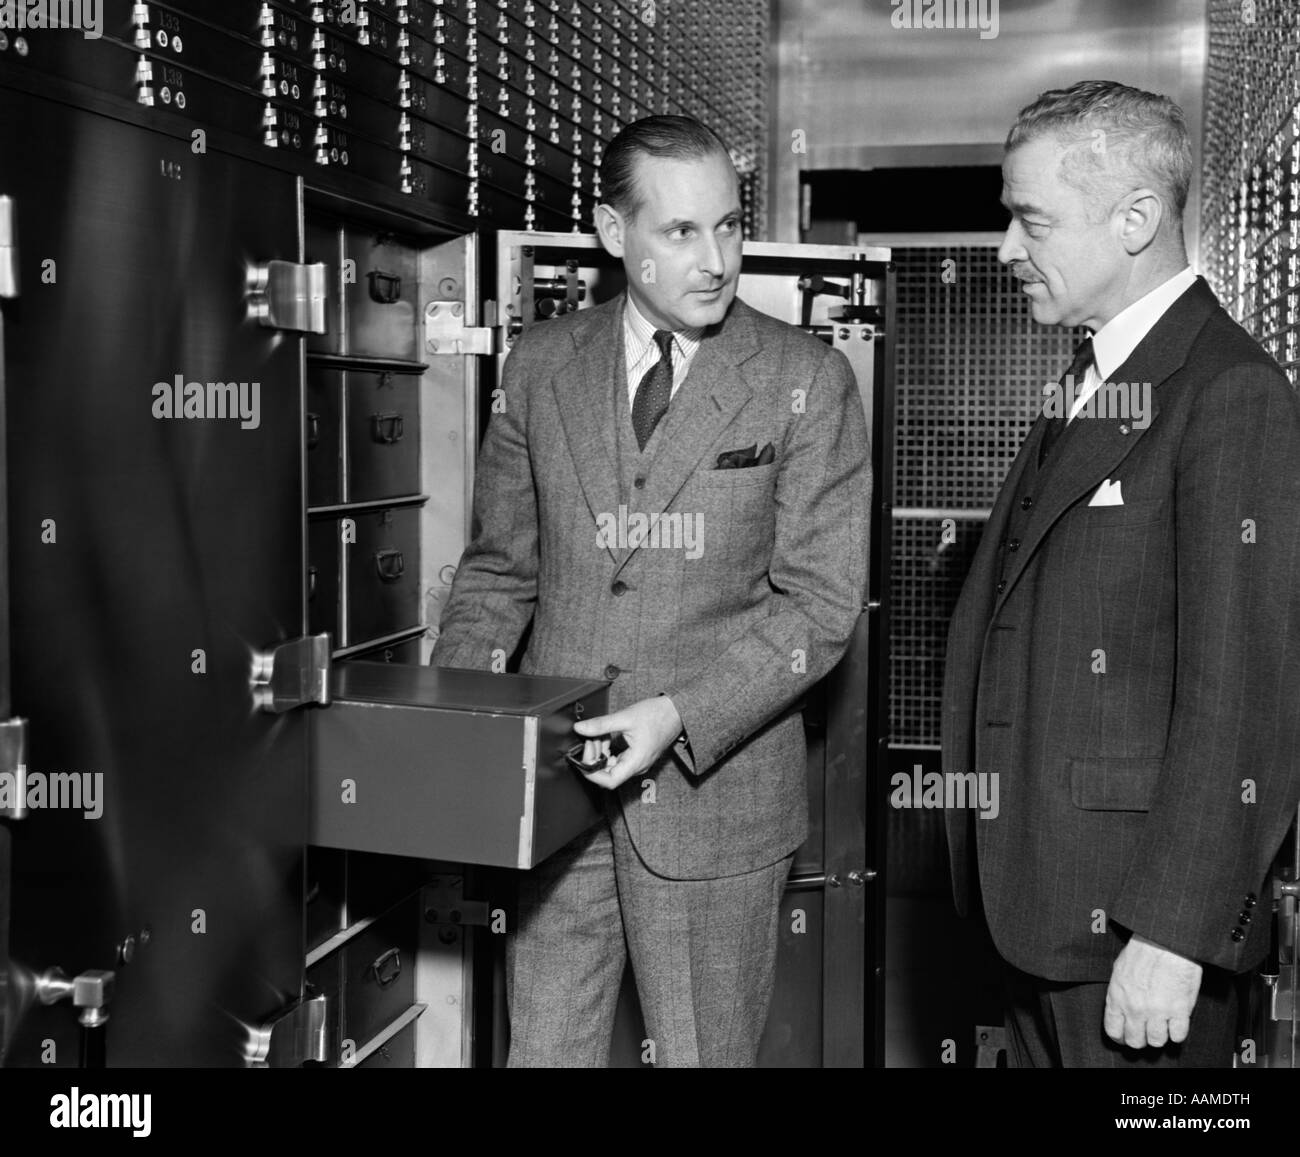 1940s TWO MEN BANK OPEN SAFETY DEPOSIT BOX VIEW VAULT SAVINGS BANK SECURITY VALUABLES RETRO VINTAGE - Stock Image